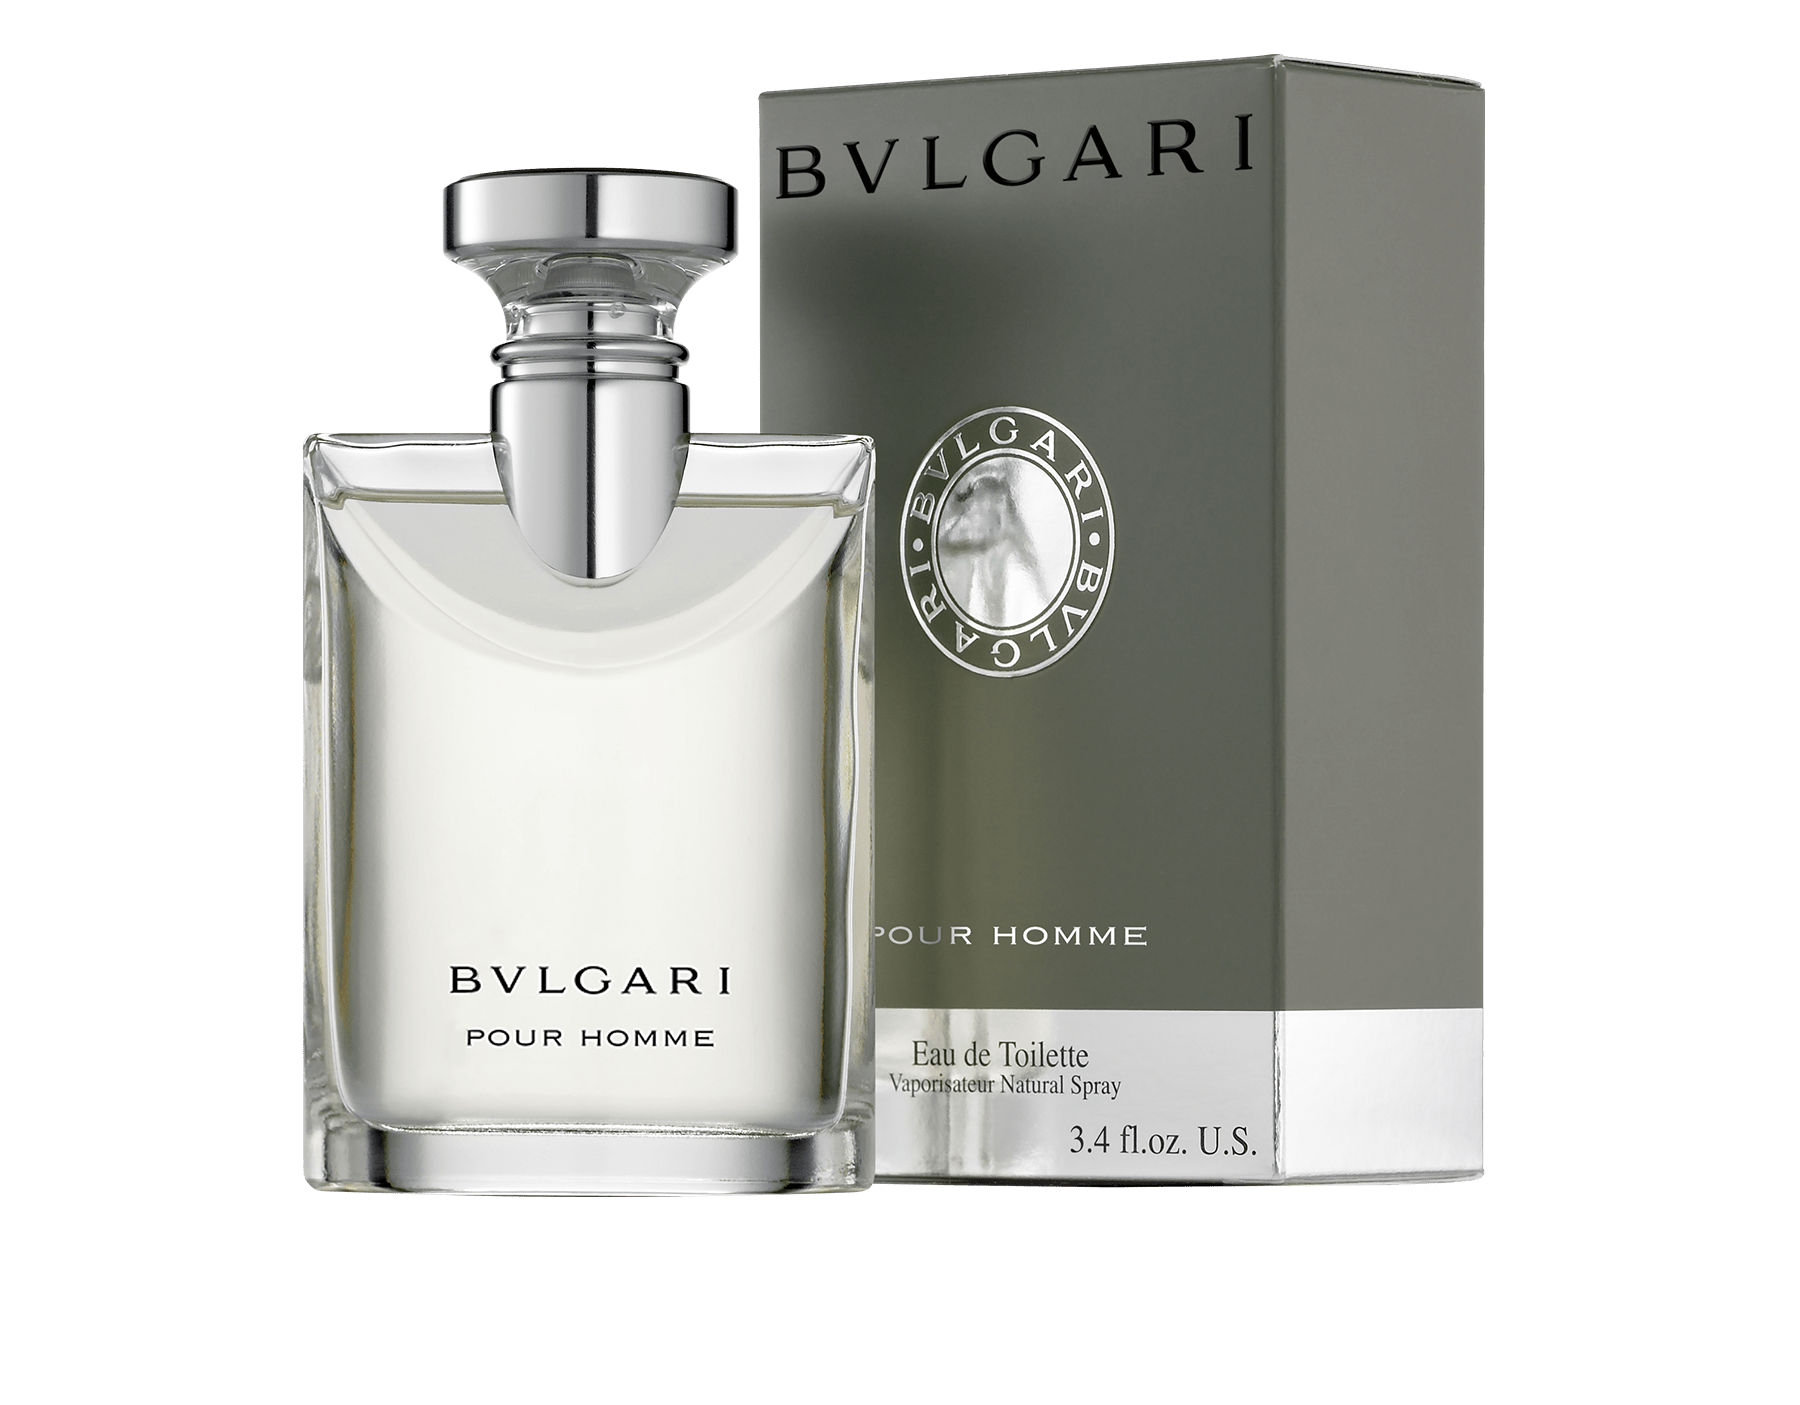 A contemporary and classic fragrance for men 83150 image 2